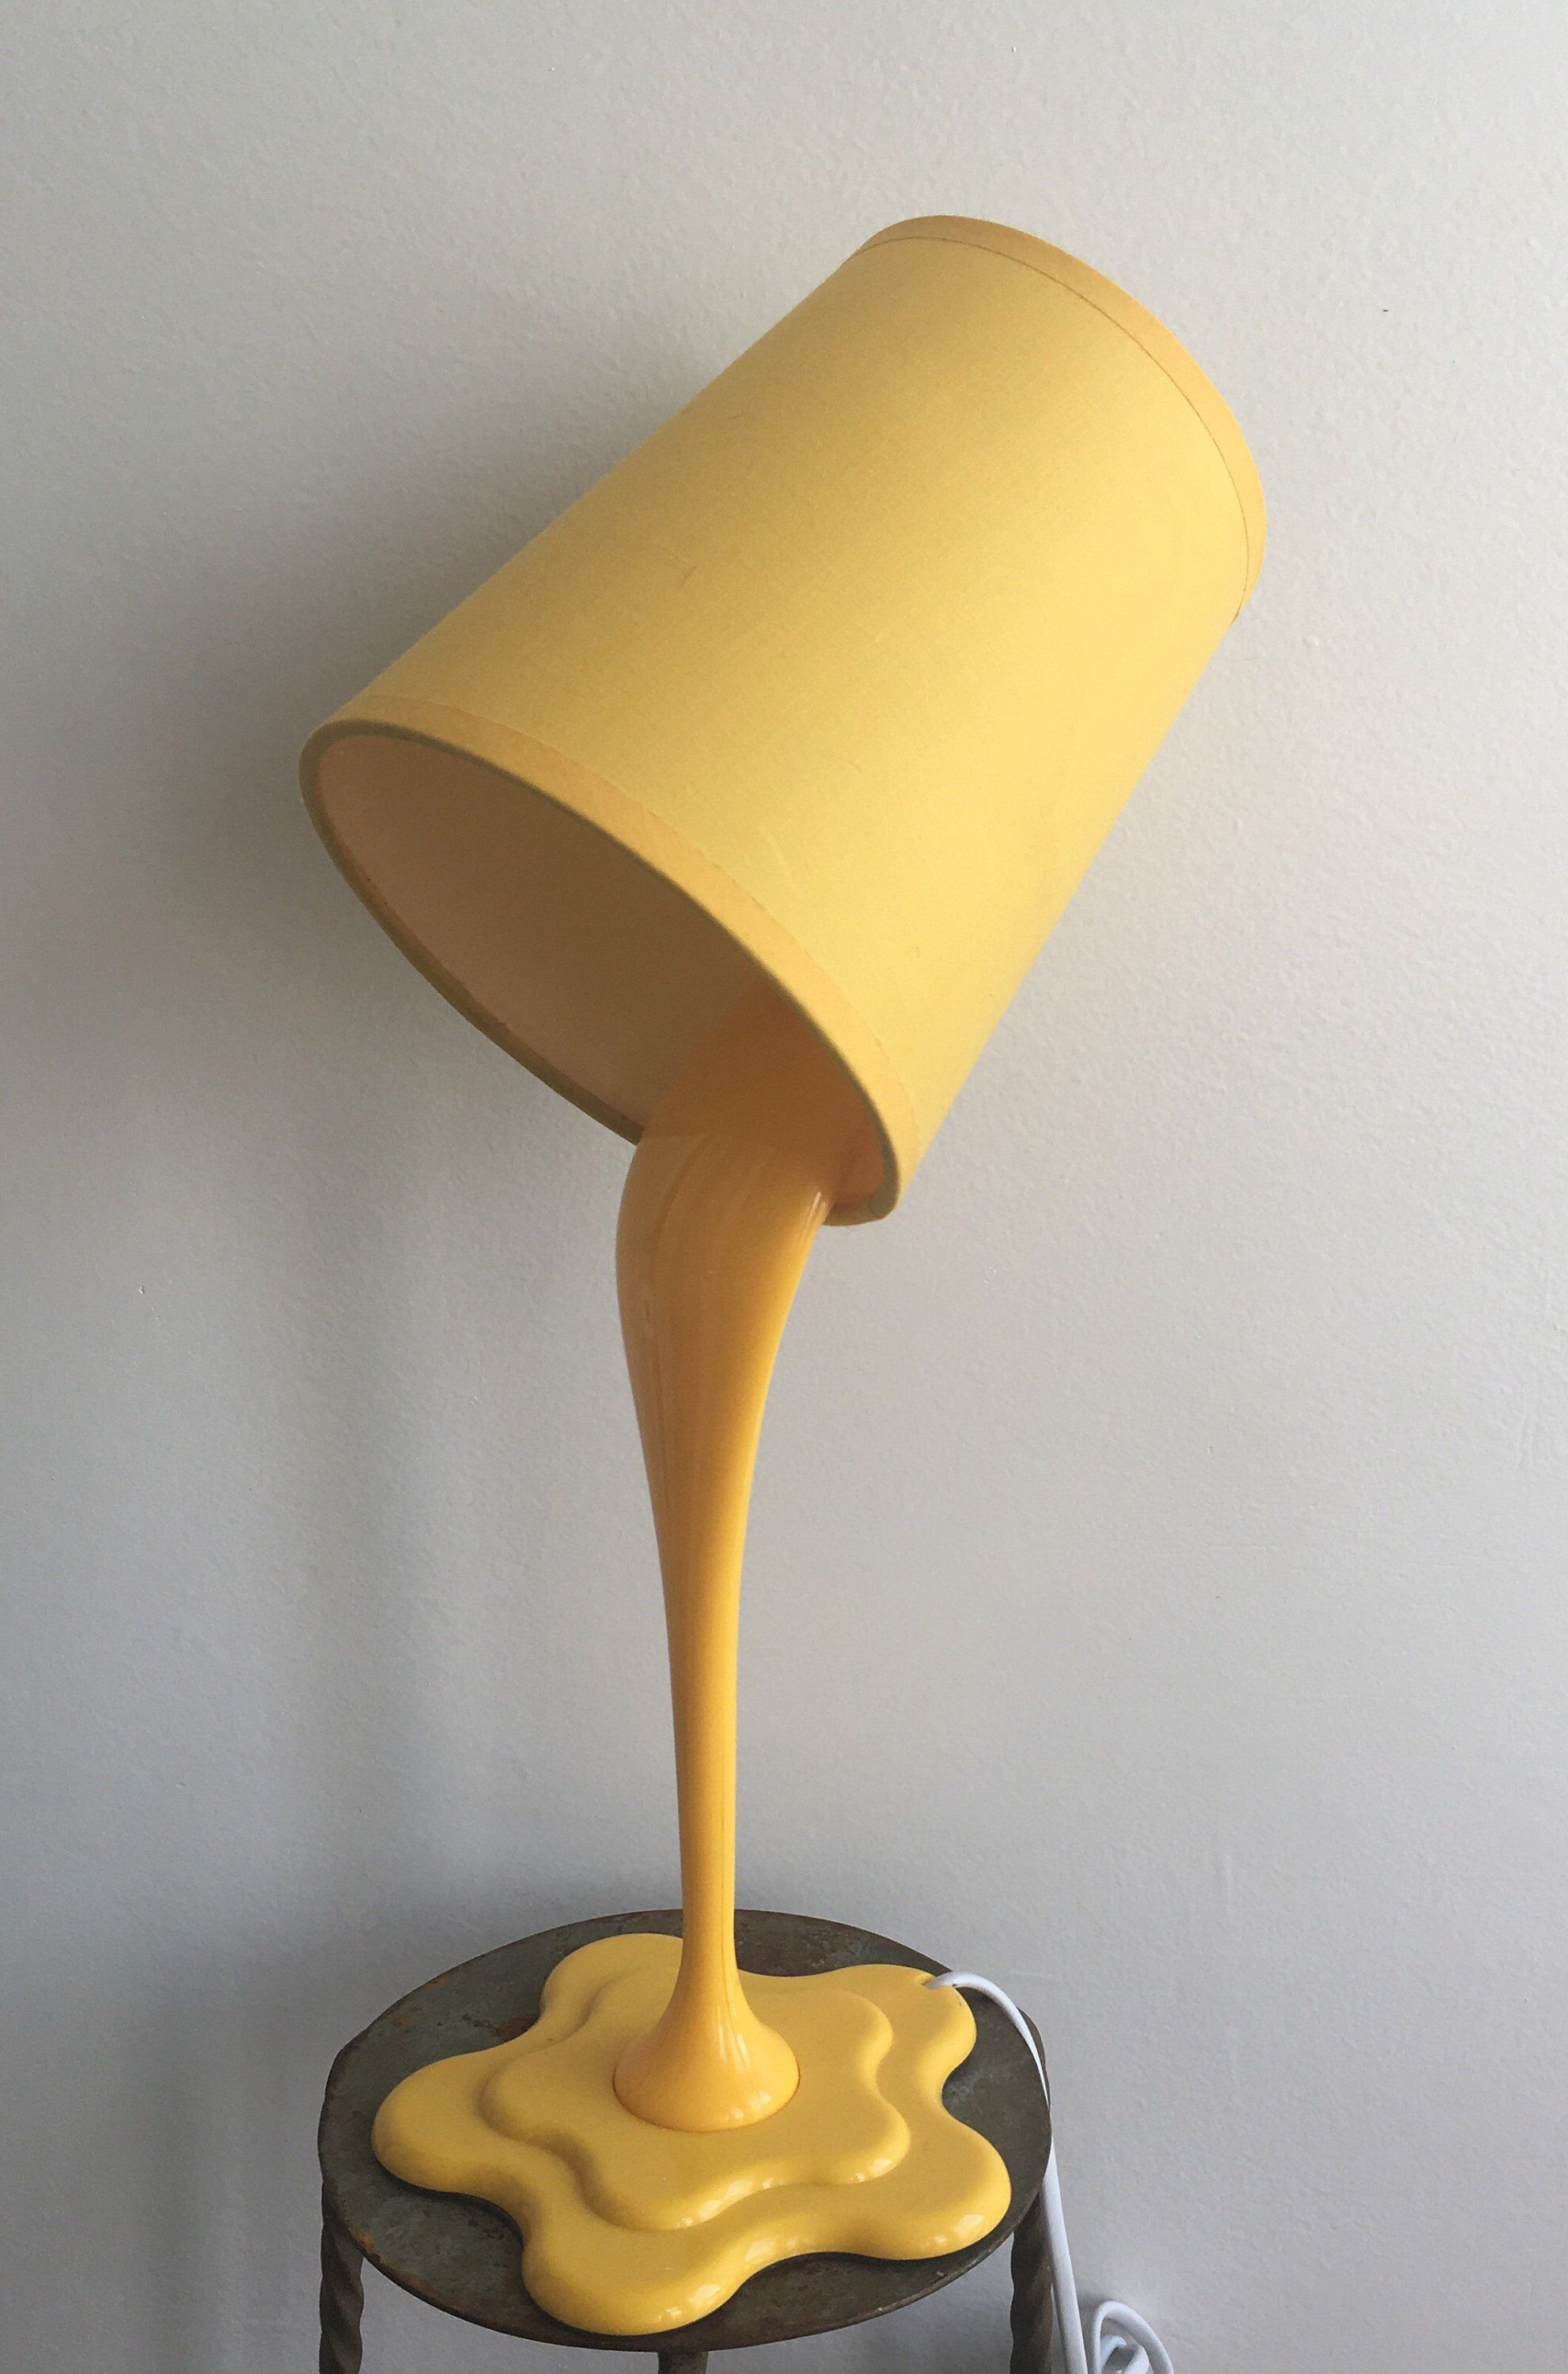 yellow 80s design table lamp, vintage table lamp, retro